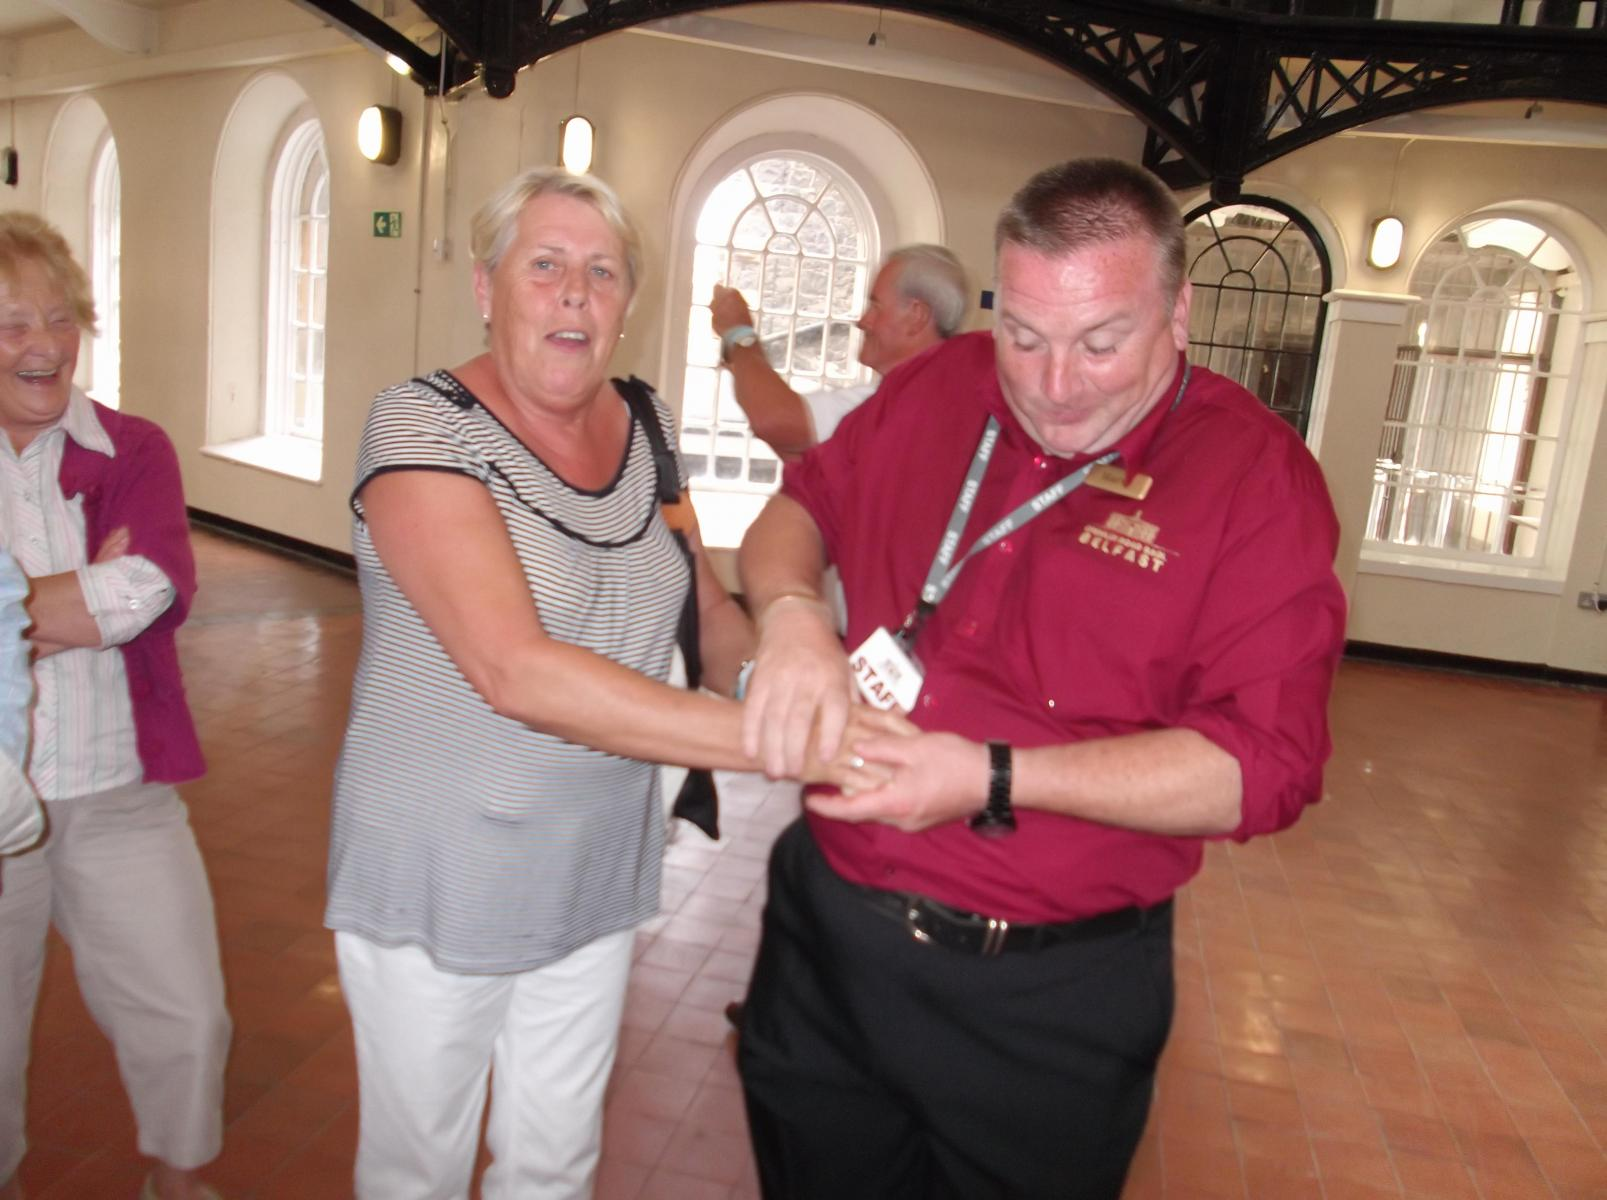 June-being-cuffed-at-the-Gaol-sc